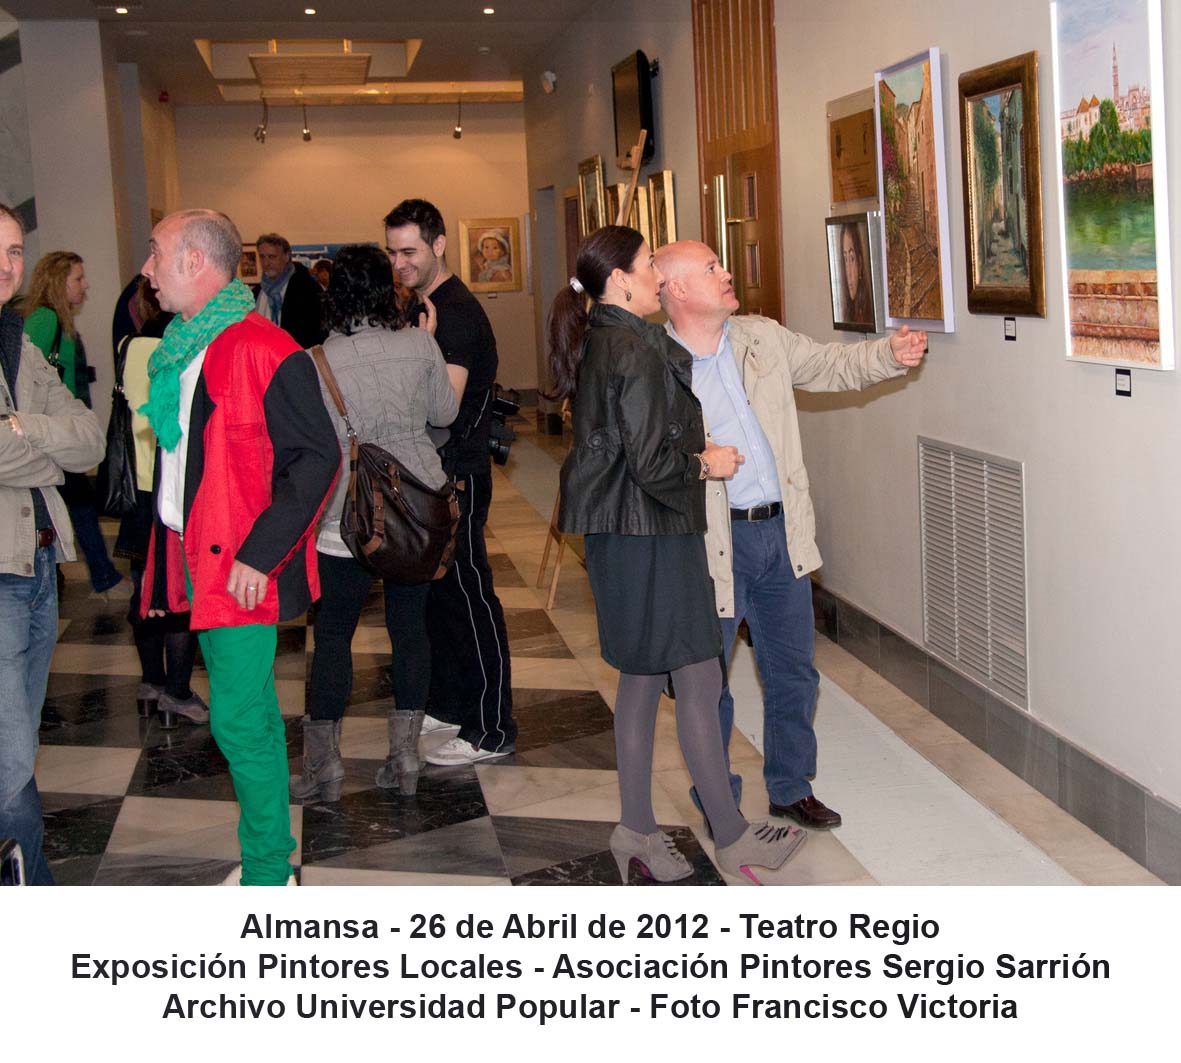 120426 ASOC PINTORES SERGIO SARRION 01